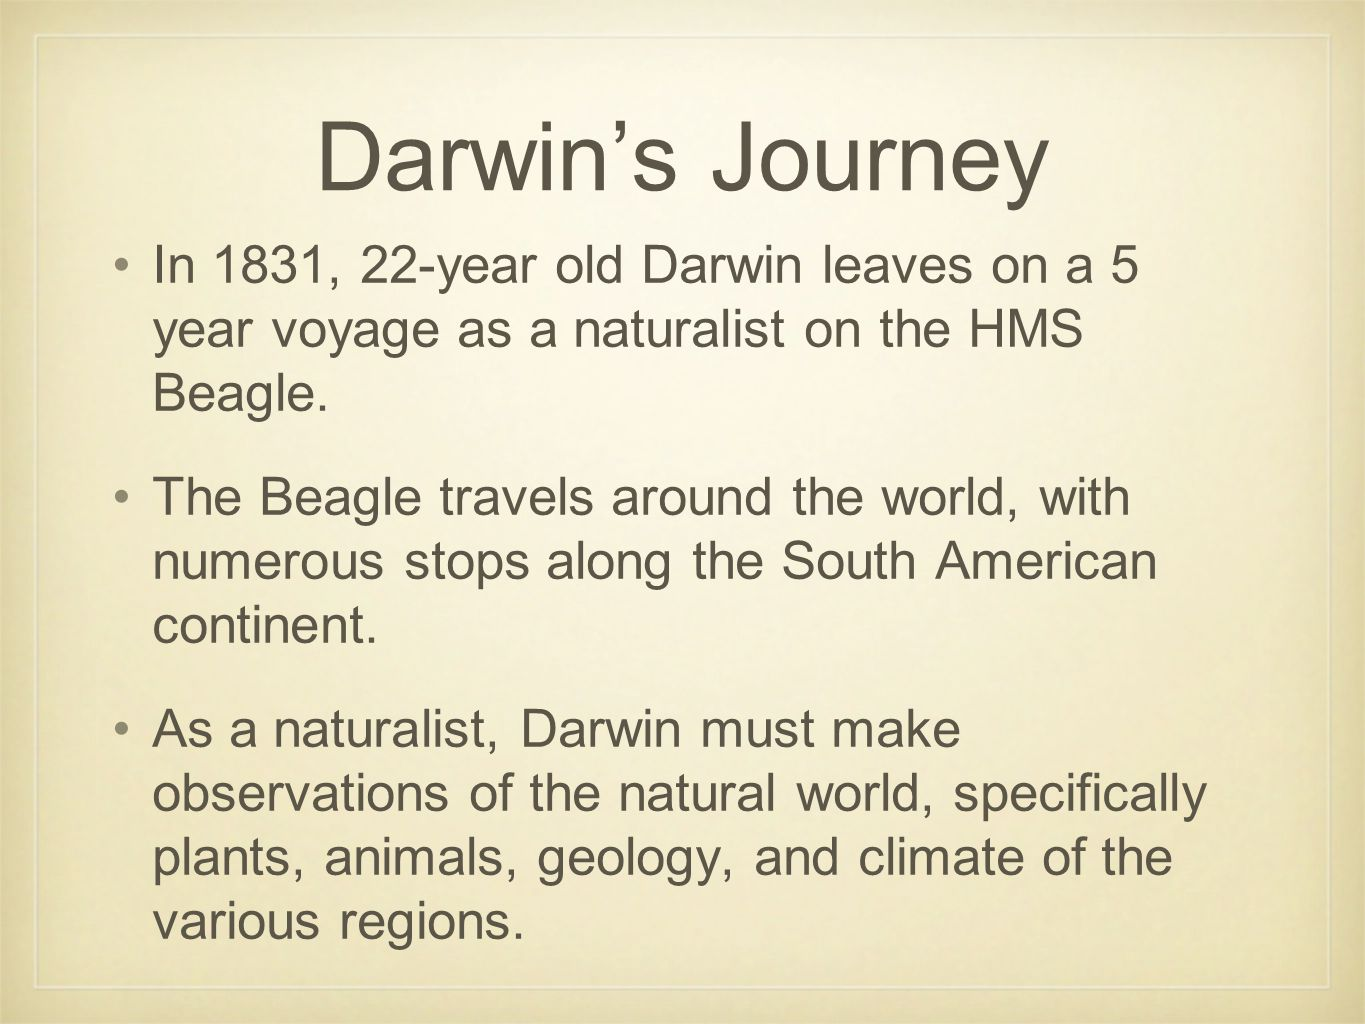 Darwin's Journey In 1831, 22-year old Darwin leaves on a 5 year voyage as a naturalist on the HMS Beagle. The Beagle travels around the world, with nu